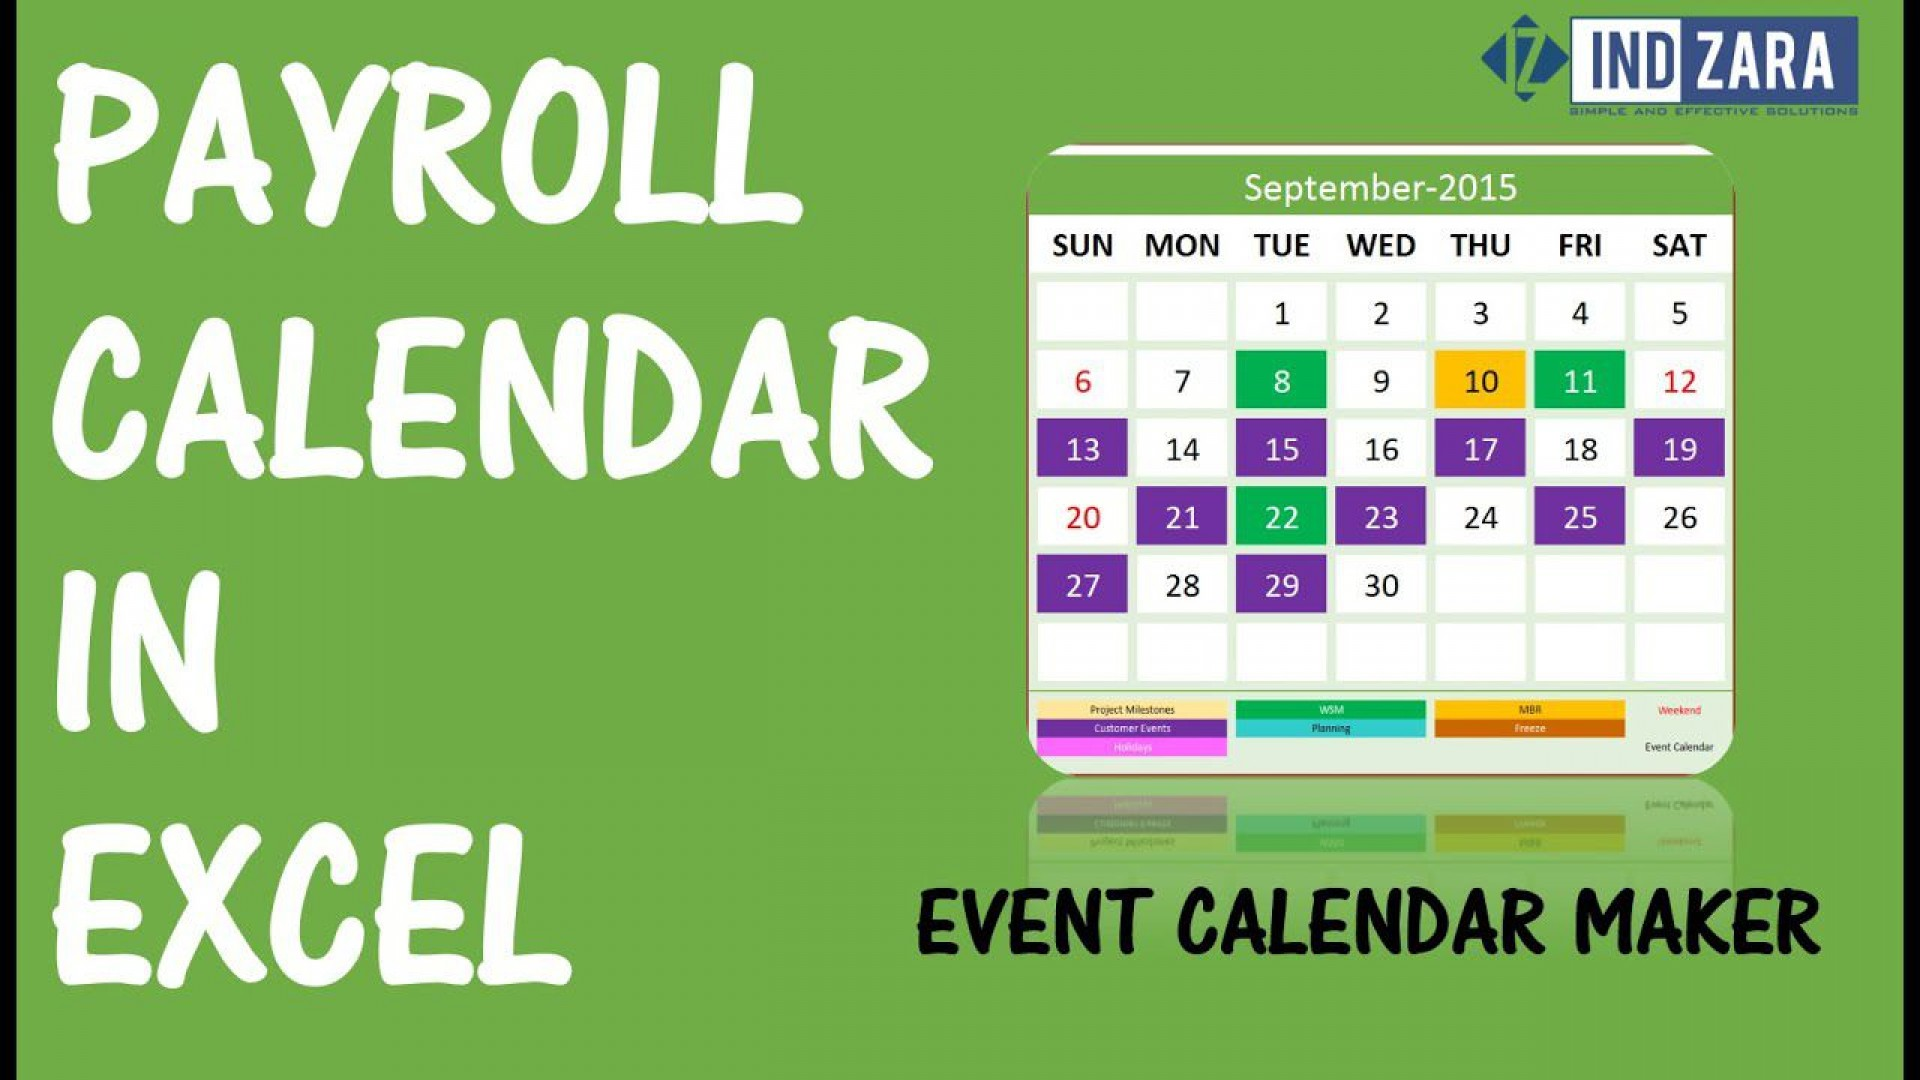 007 Awesome Payroll Calendar Template 2020 High Def  Biweekly Schedule Excel Free1920